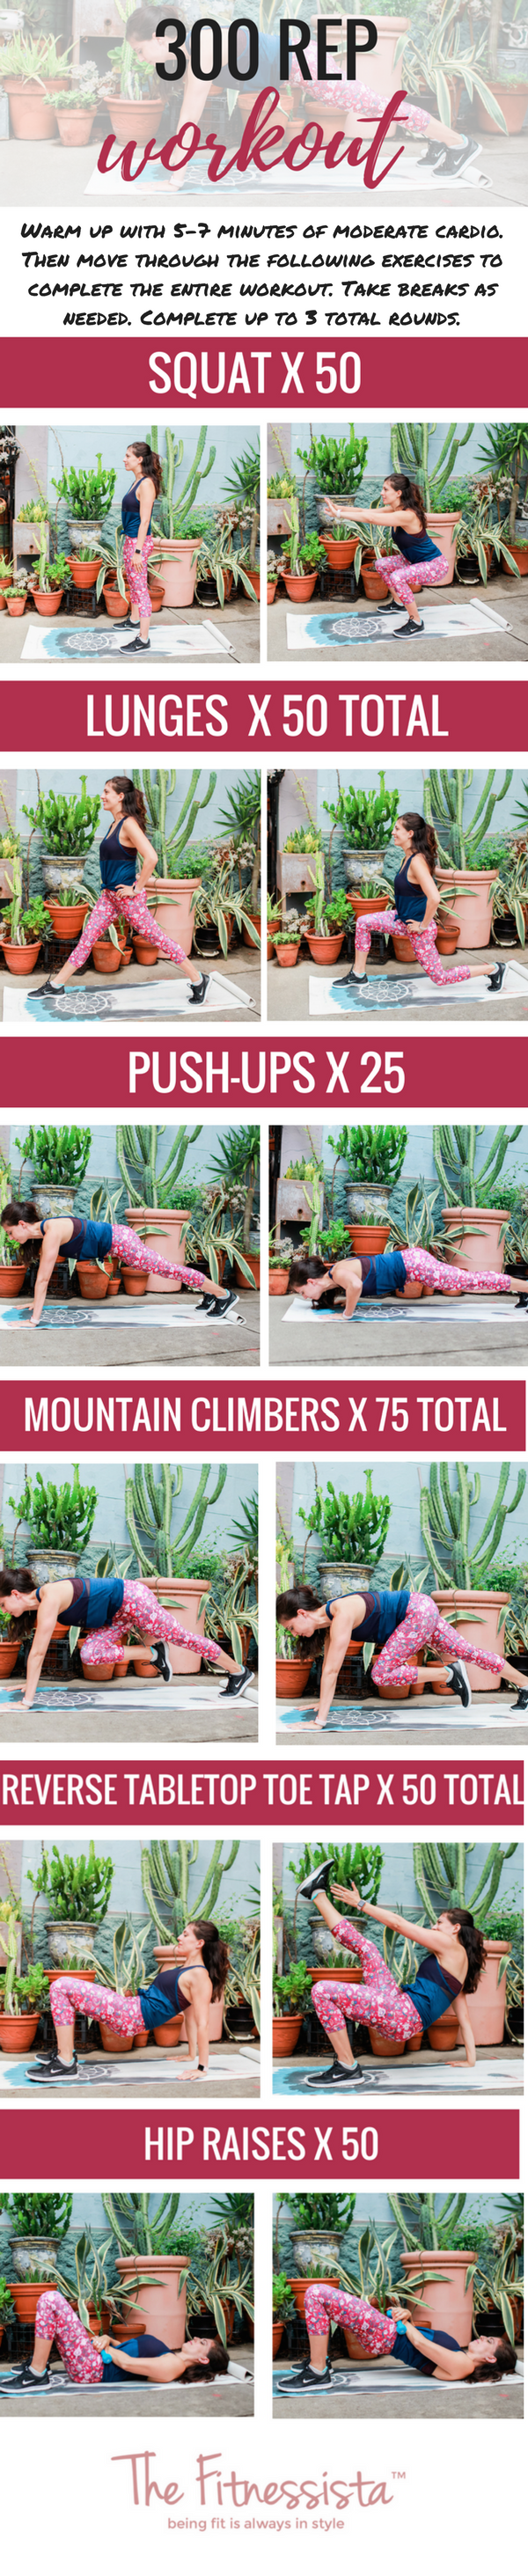 300 rep workout you can do ANYWHERE! grab a pair of dumbbells and get ready to get sweaty. fitnessista.com